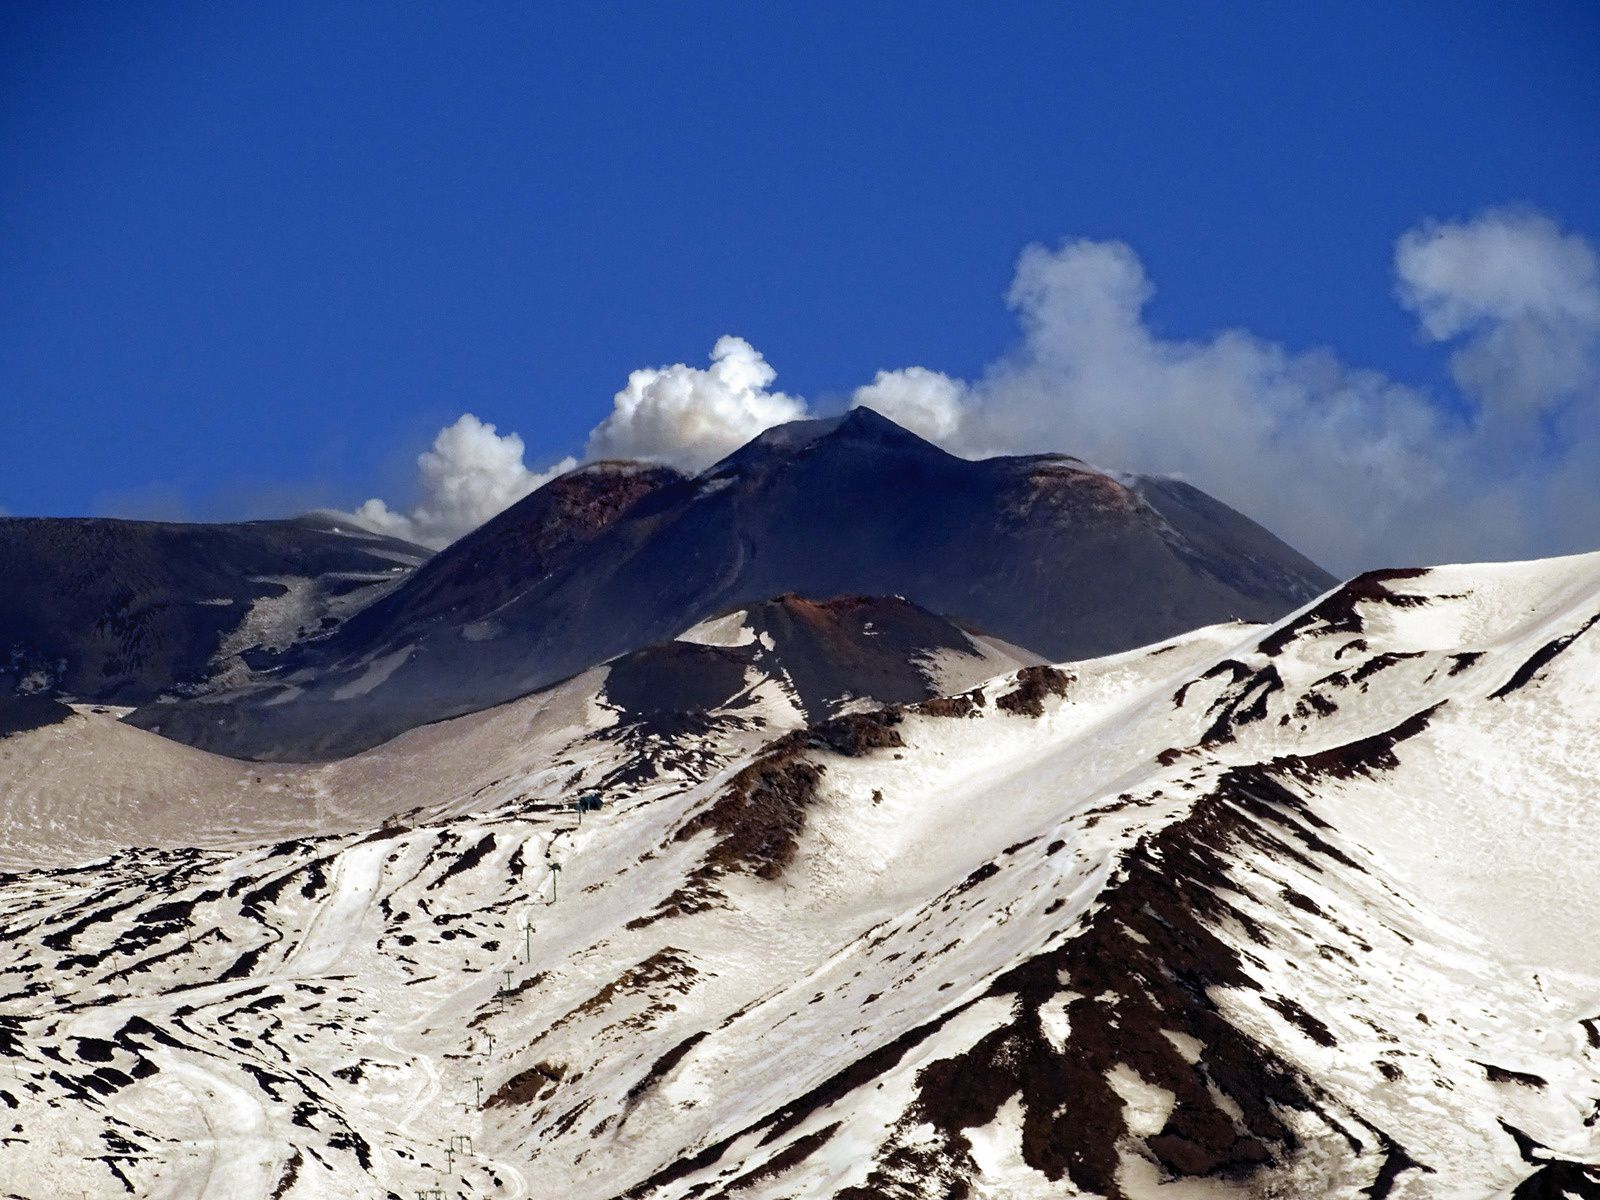 As Boris Behncke says, Etna has a new baby, seen here from Nicolosi on March 2, between the SEC on the left and the NSEC on the right. In the foreground you can see the pillars of the cable car. - photo Boris Behncke 02.03.2017